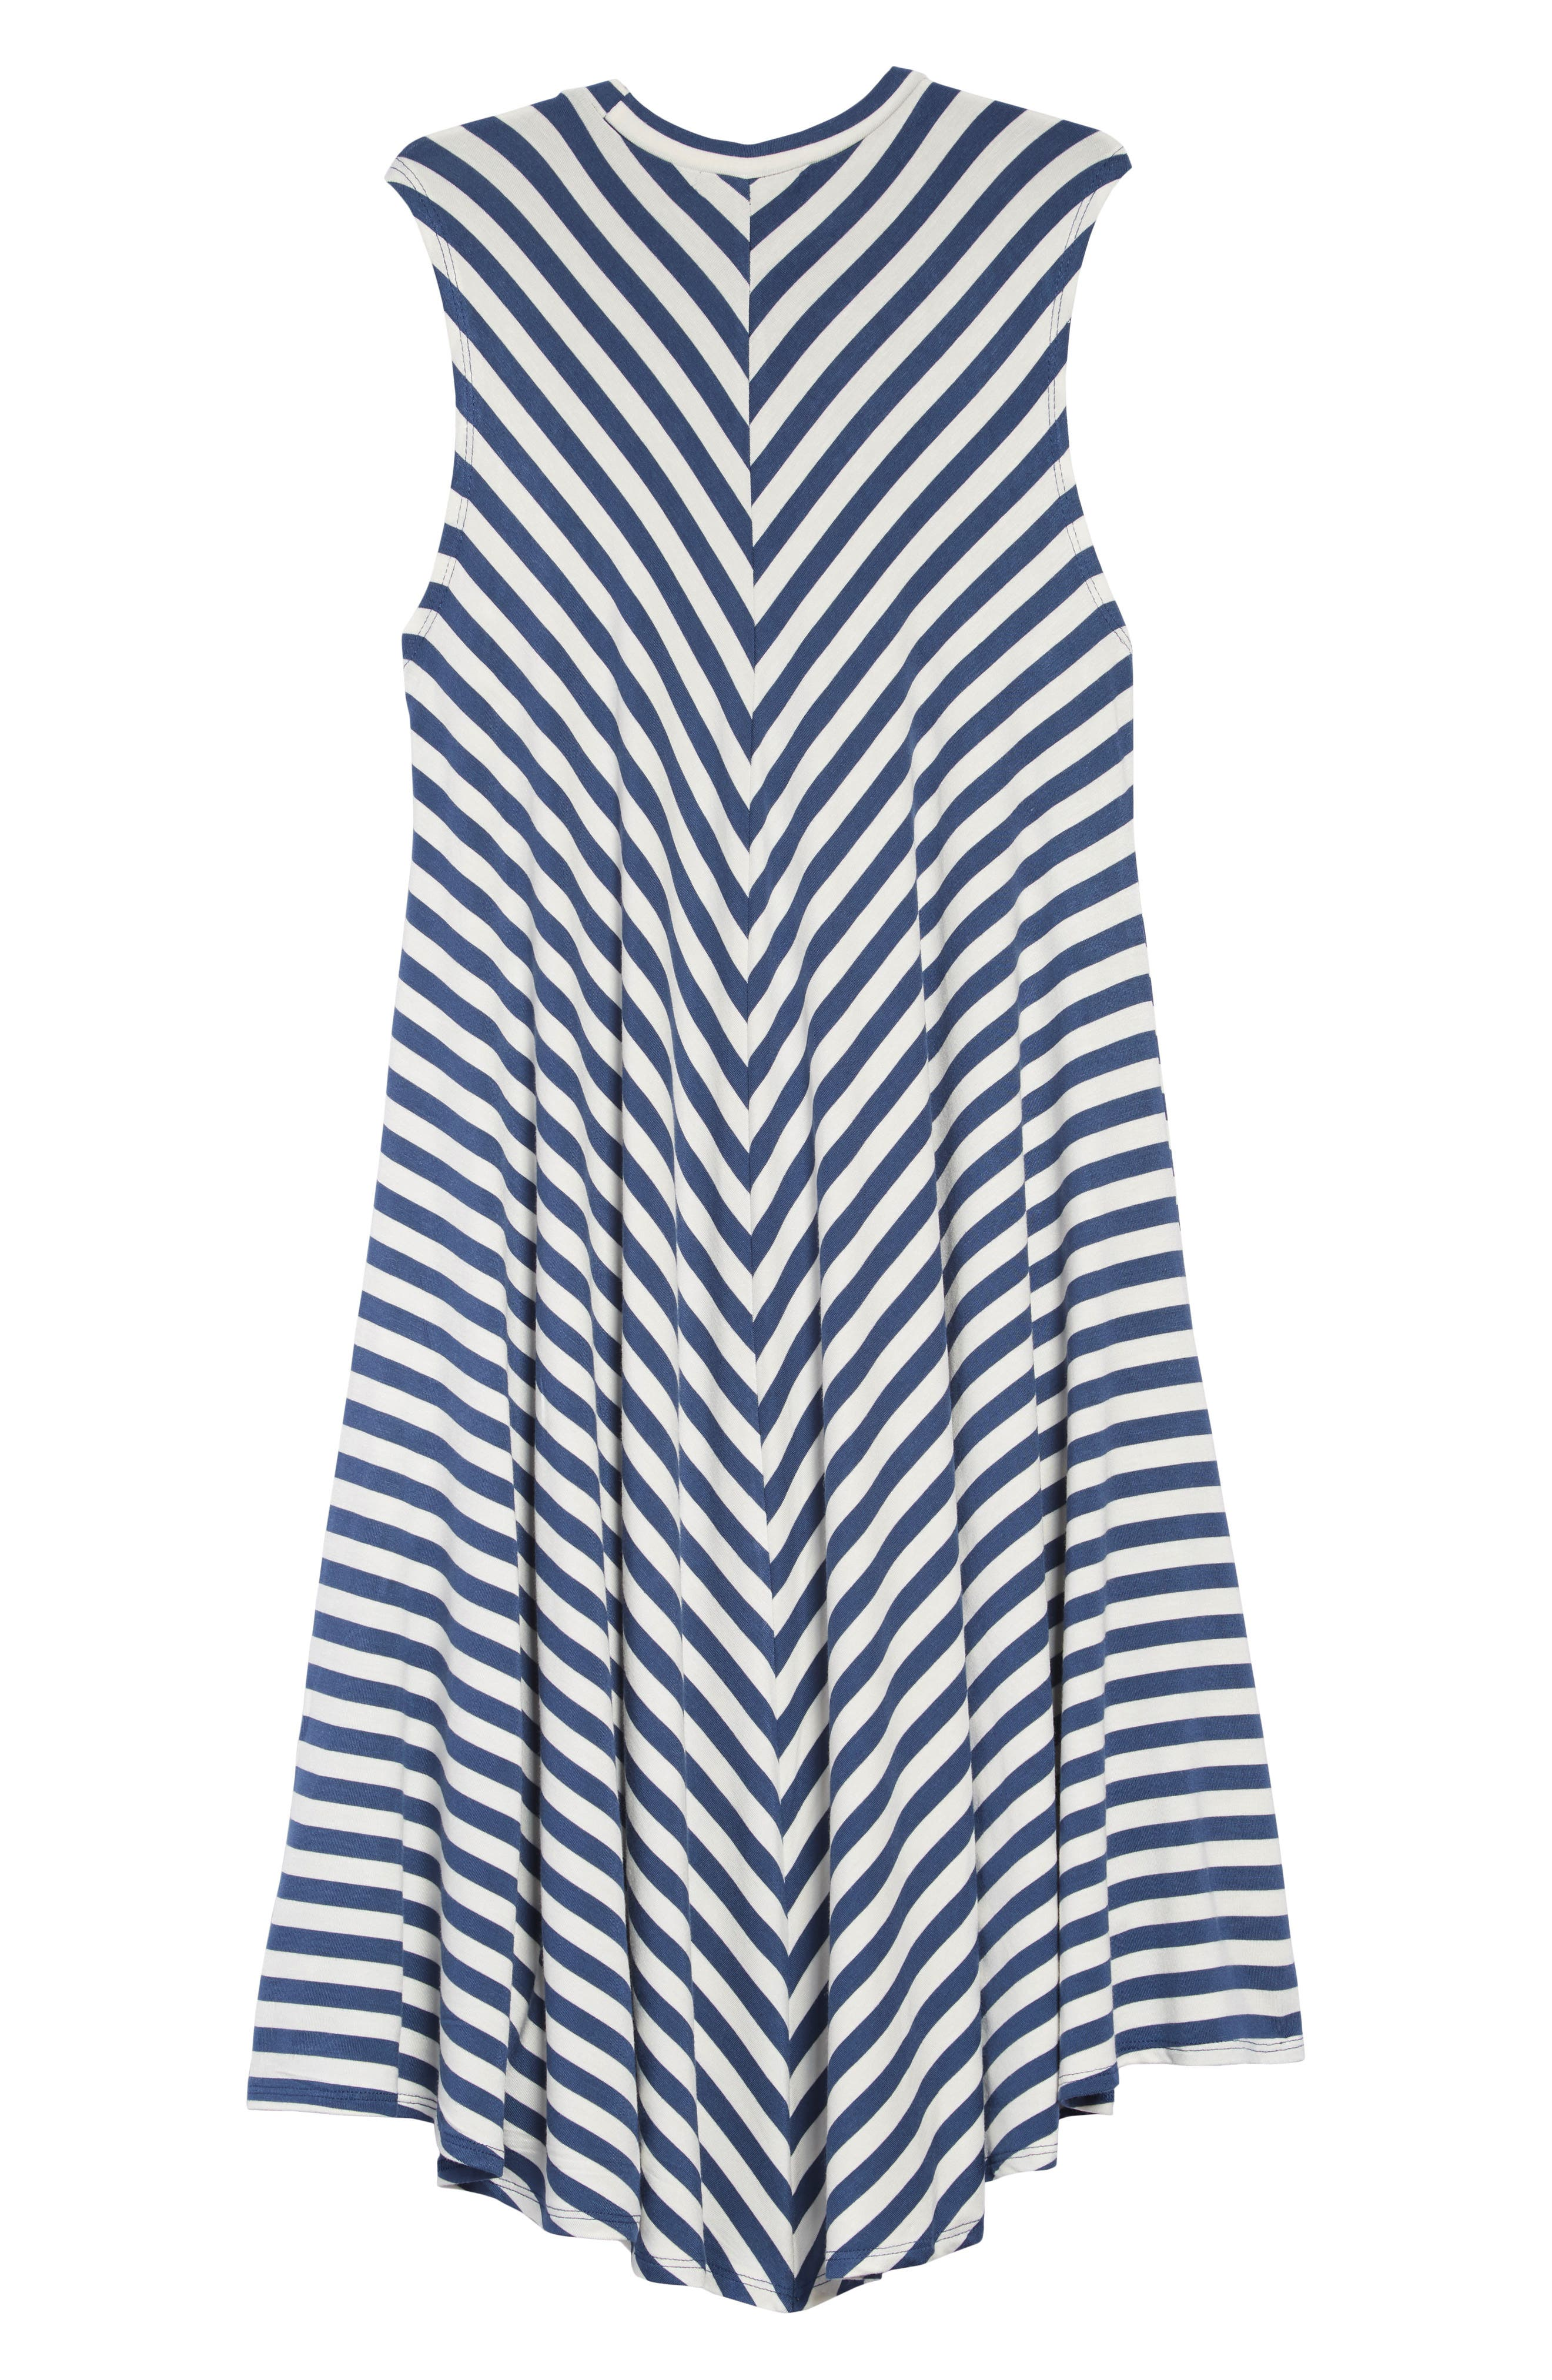 TUCKER + TATE, Print Sleeveless Knit Dress, Alternate thumbnail 2, color, NAVY DENIM- IVORY STRIPE